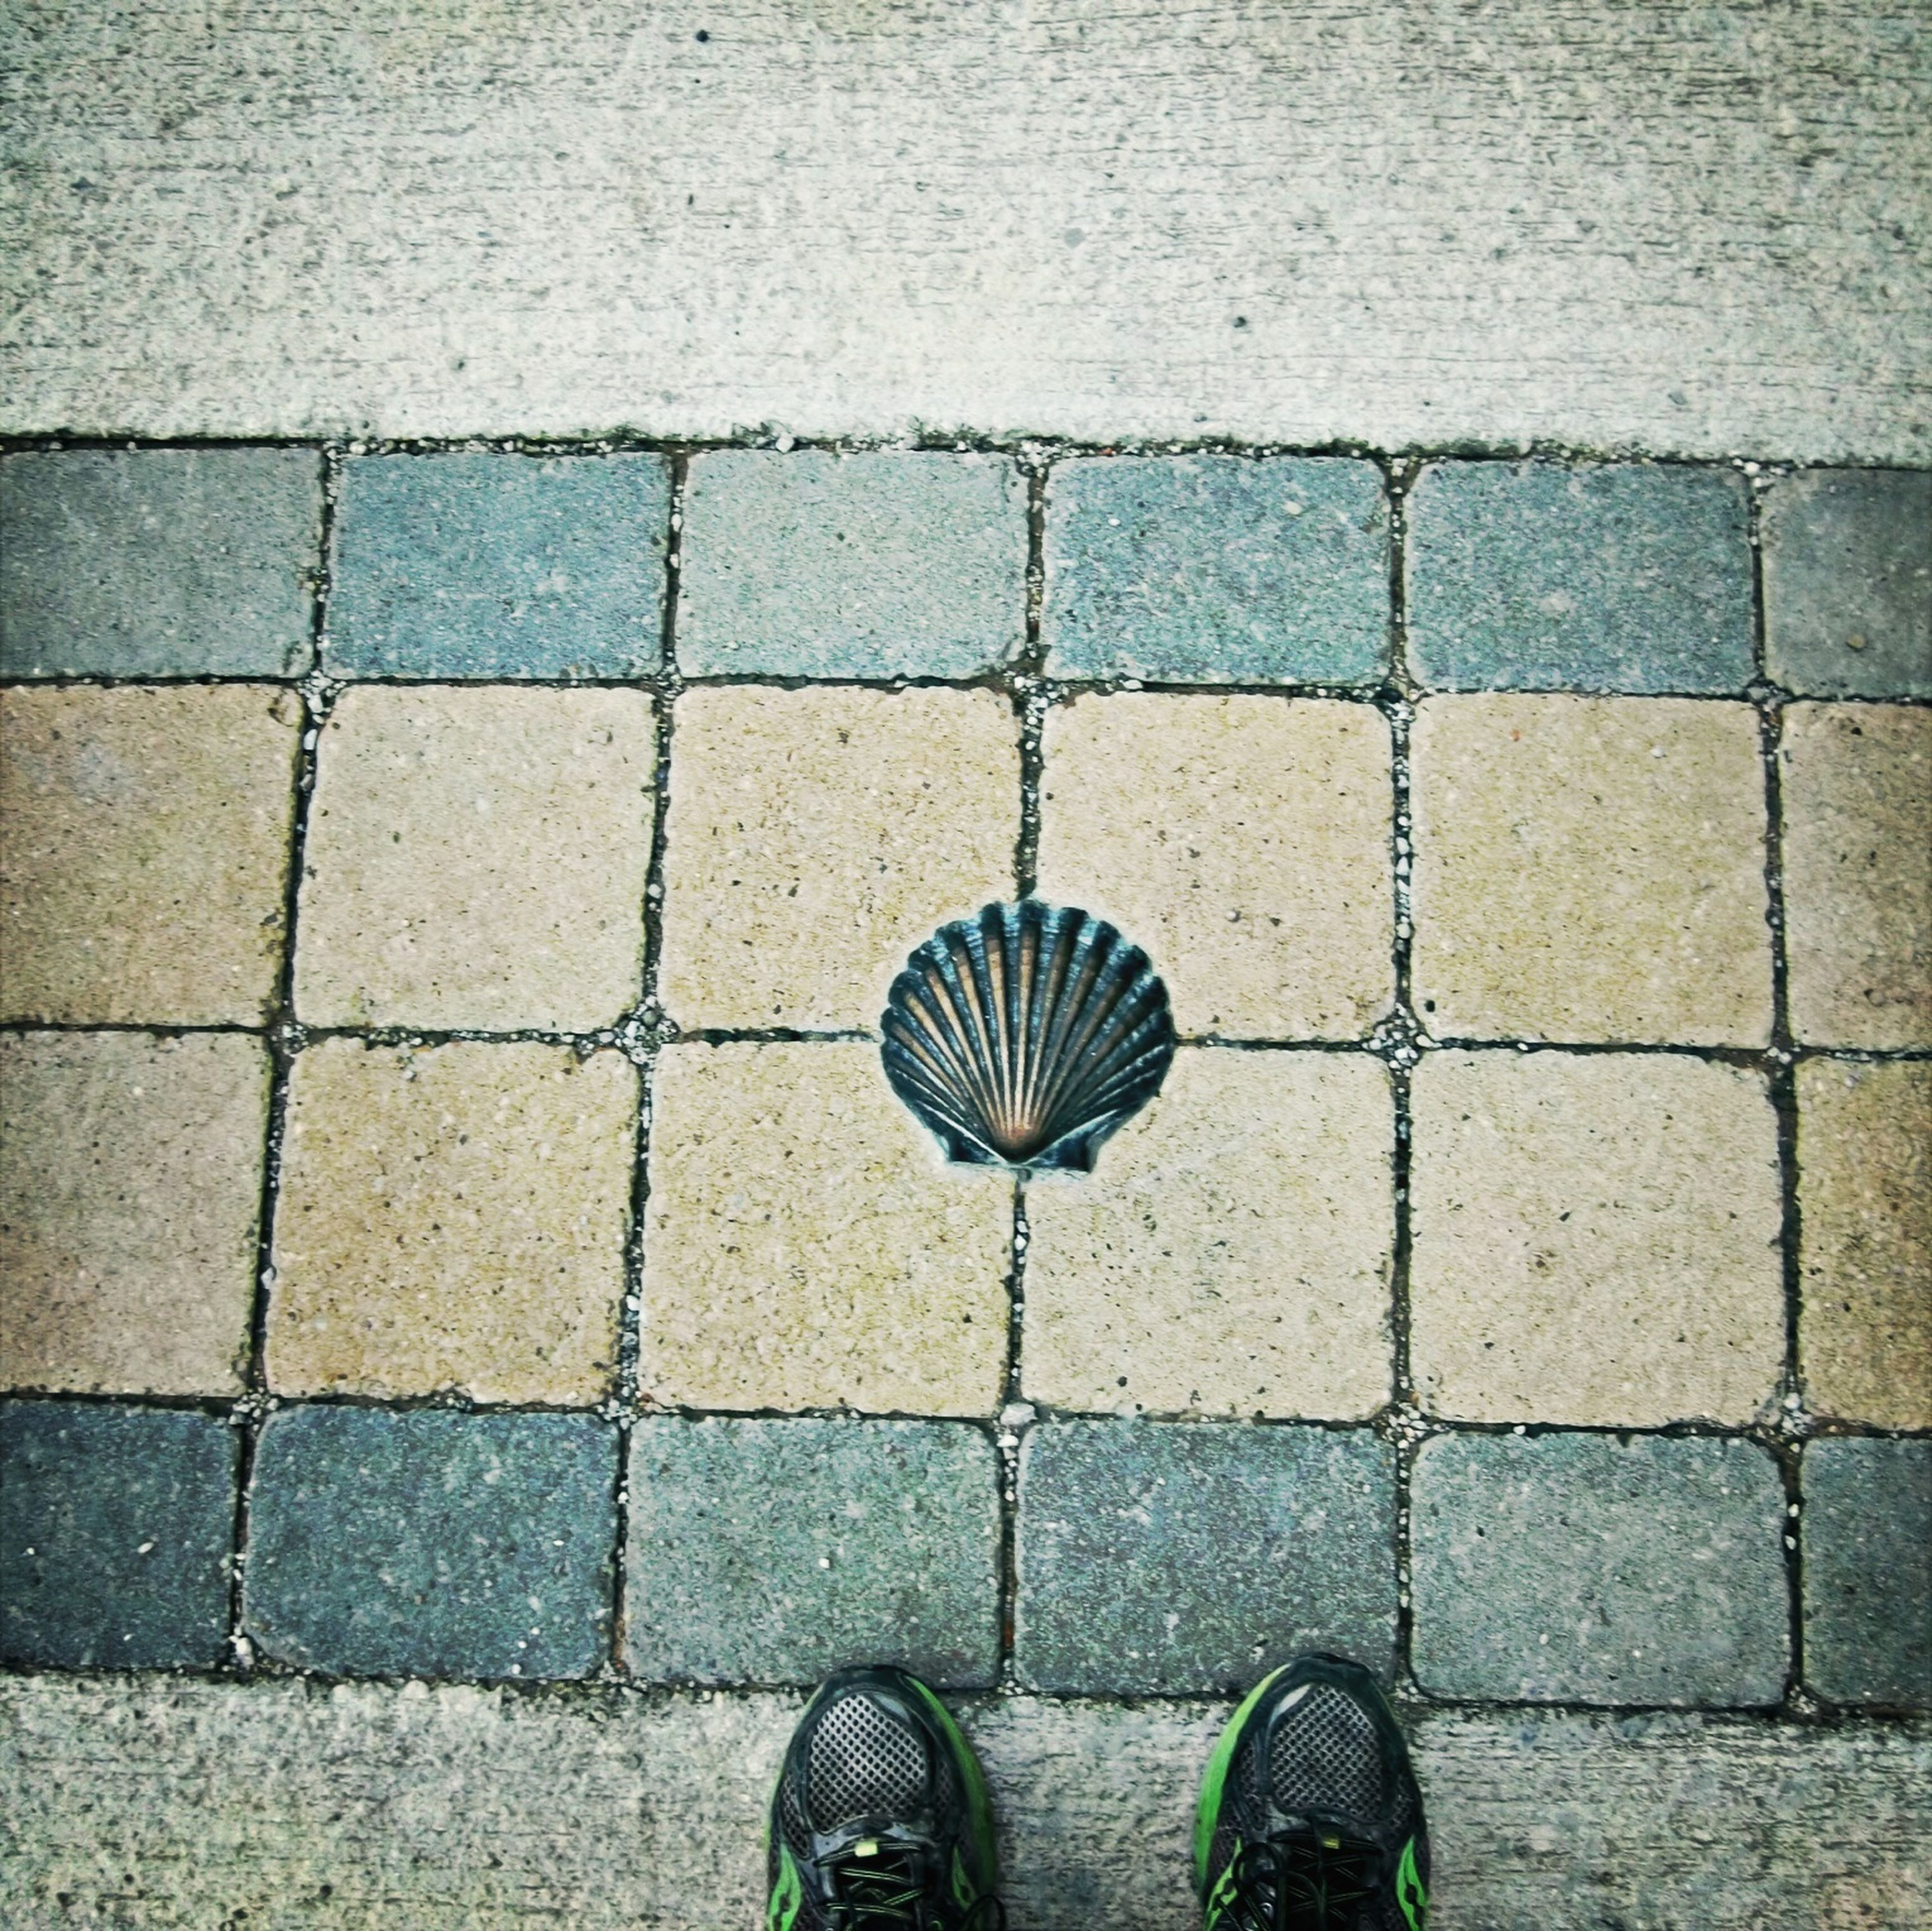 shoe, cobblestone, low section, high angle view, paving stone, street, footwear, person, personal perspective, directly above, tiled floor, footpath, pattern, pavement, one person, pair, sidewalk, standing, human foot